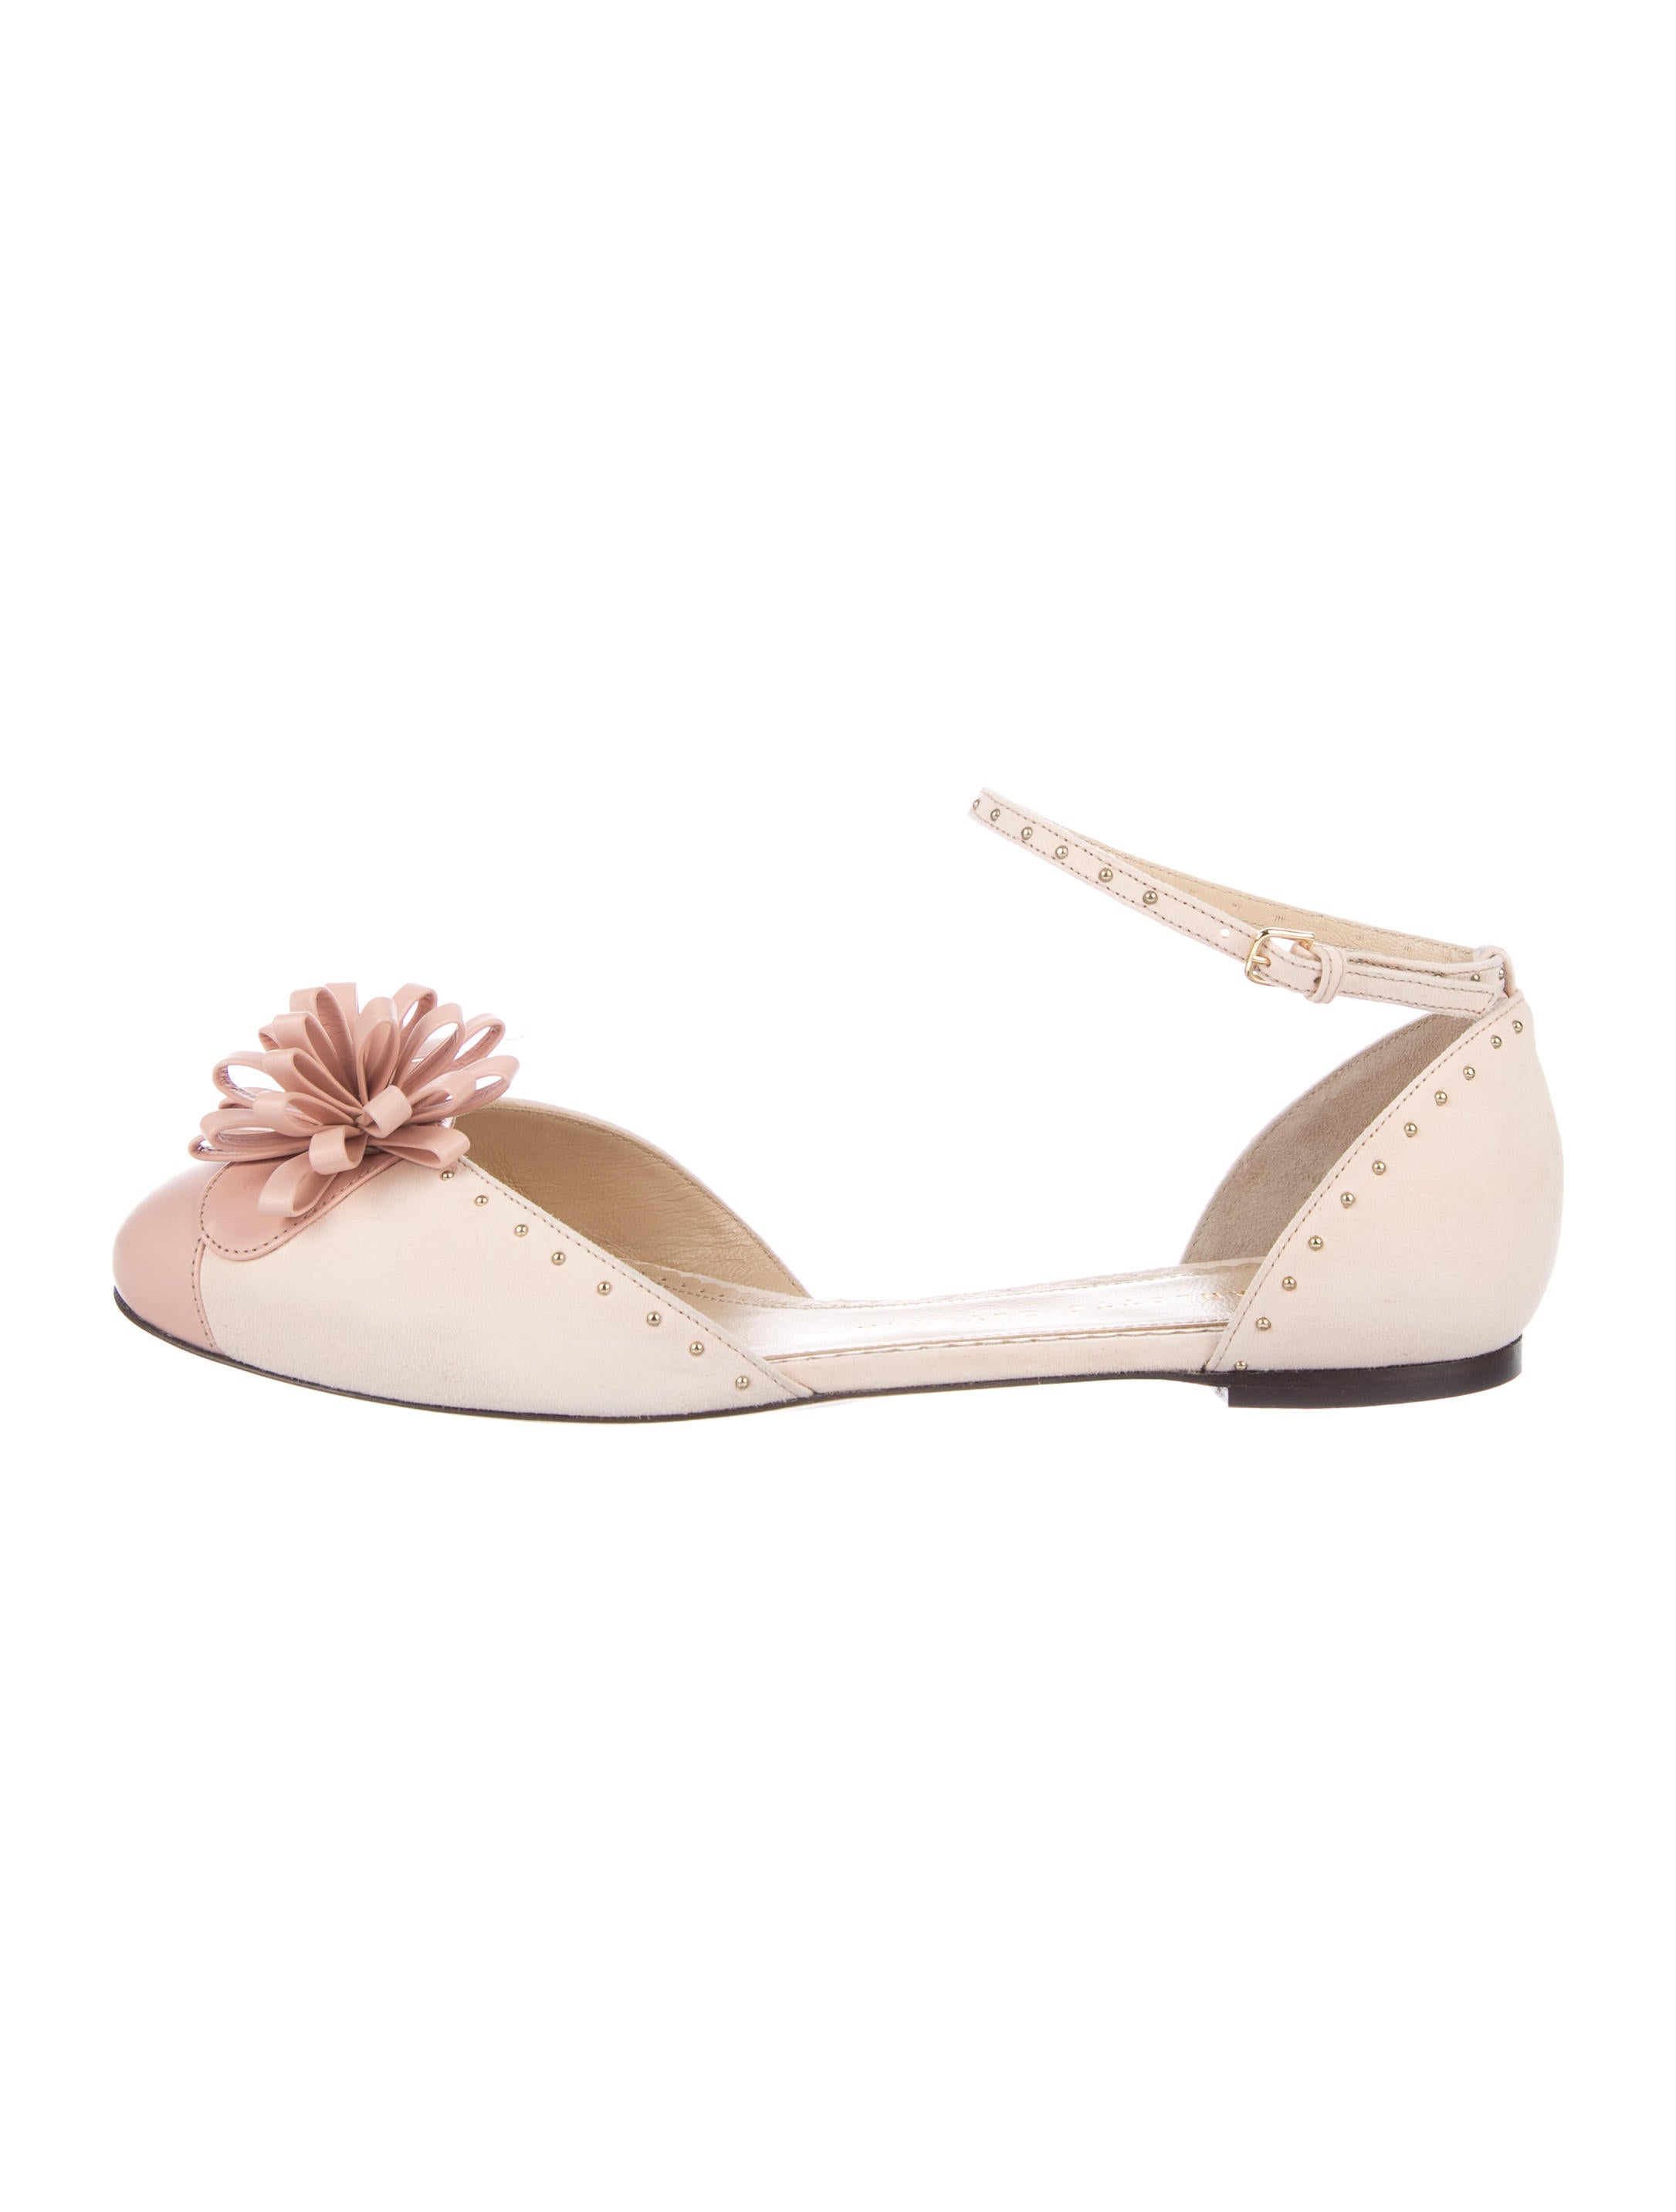 Charlotte Olympia Marcelle Suede Flats w/ Tags low cost cheap price many kinds of discount outlet buy cheap manchester great sale classic cheap price t1uqb23PX